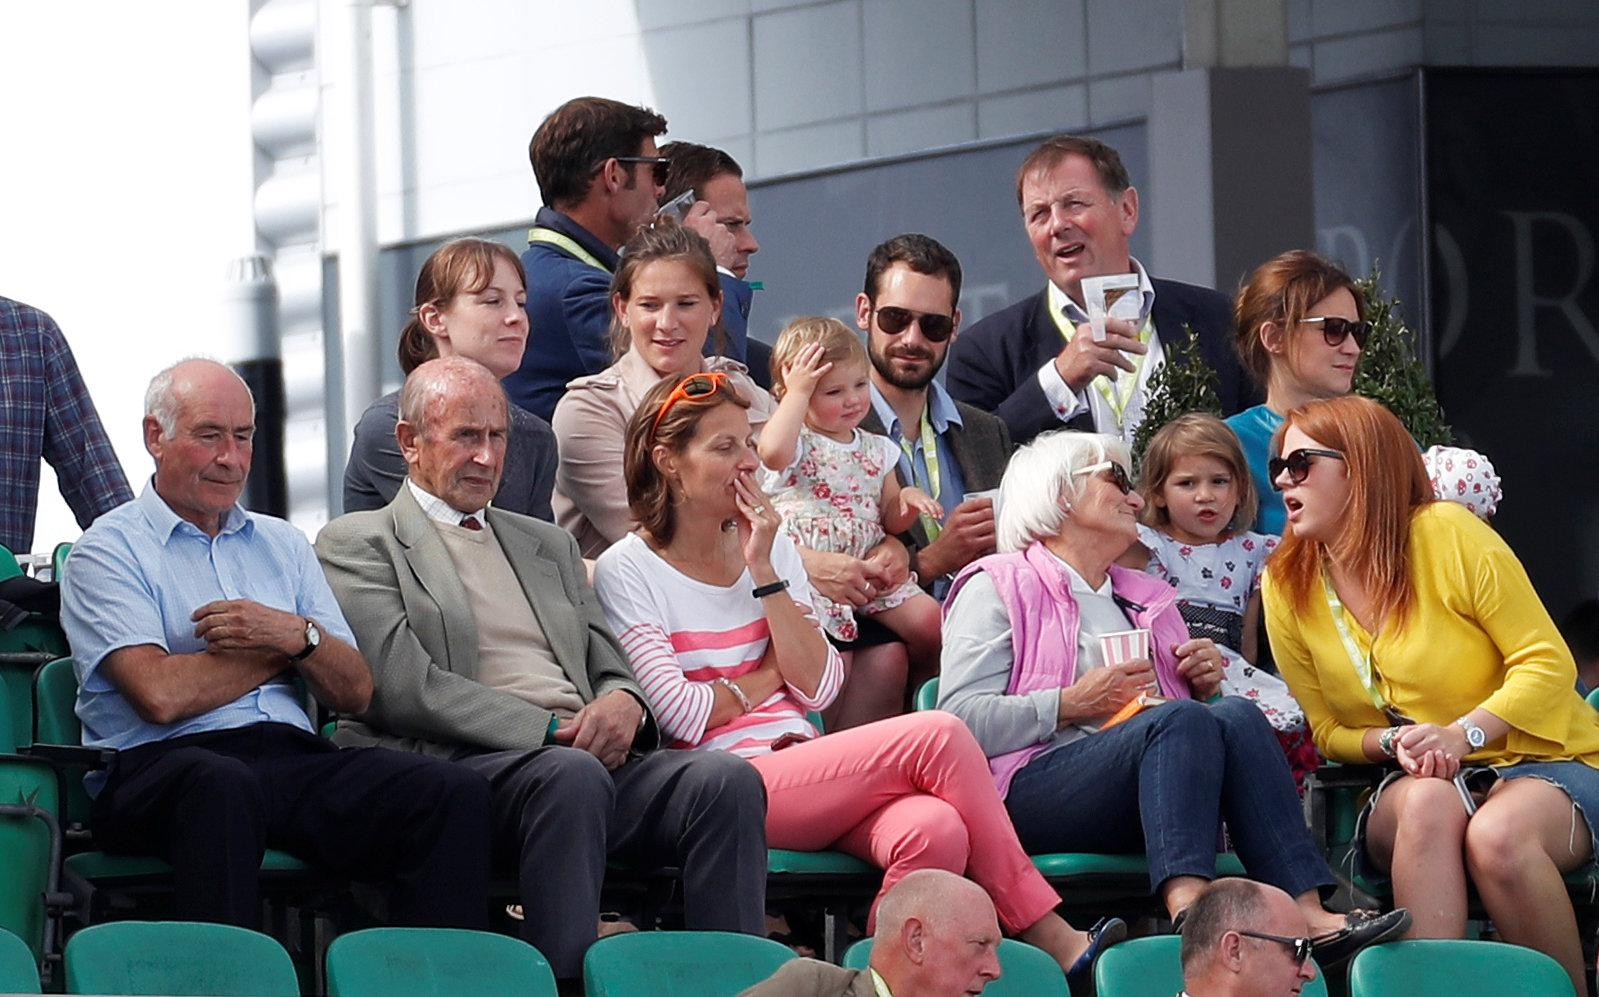 Alastair Cook's wife Alice, who was expecting their third baby today, watched on at The Oval as he became the highest-scoring left-hander ever in Test cricket